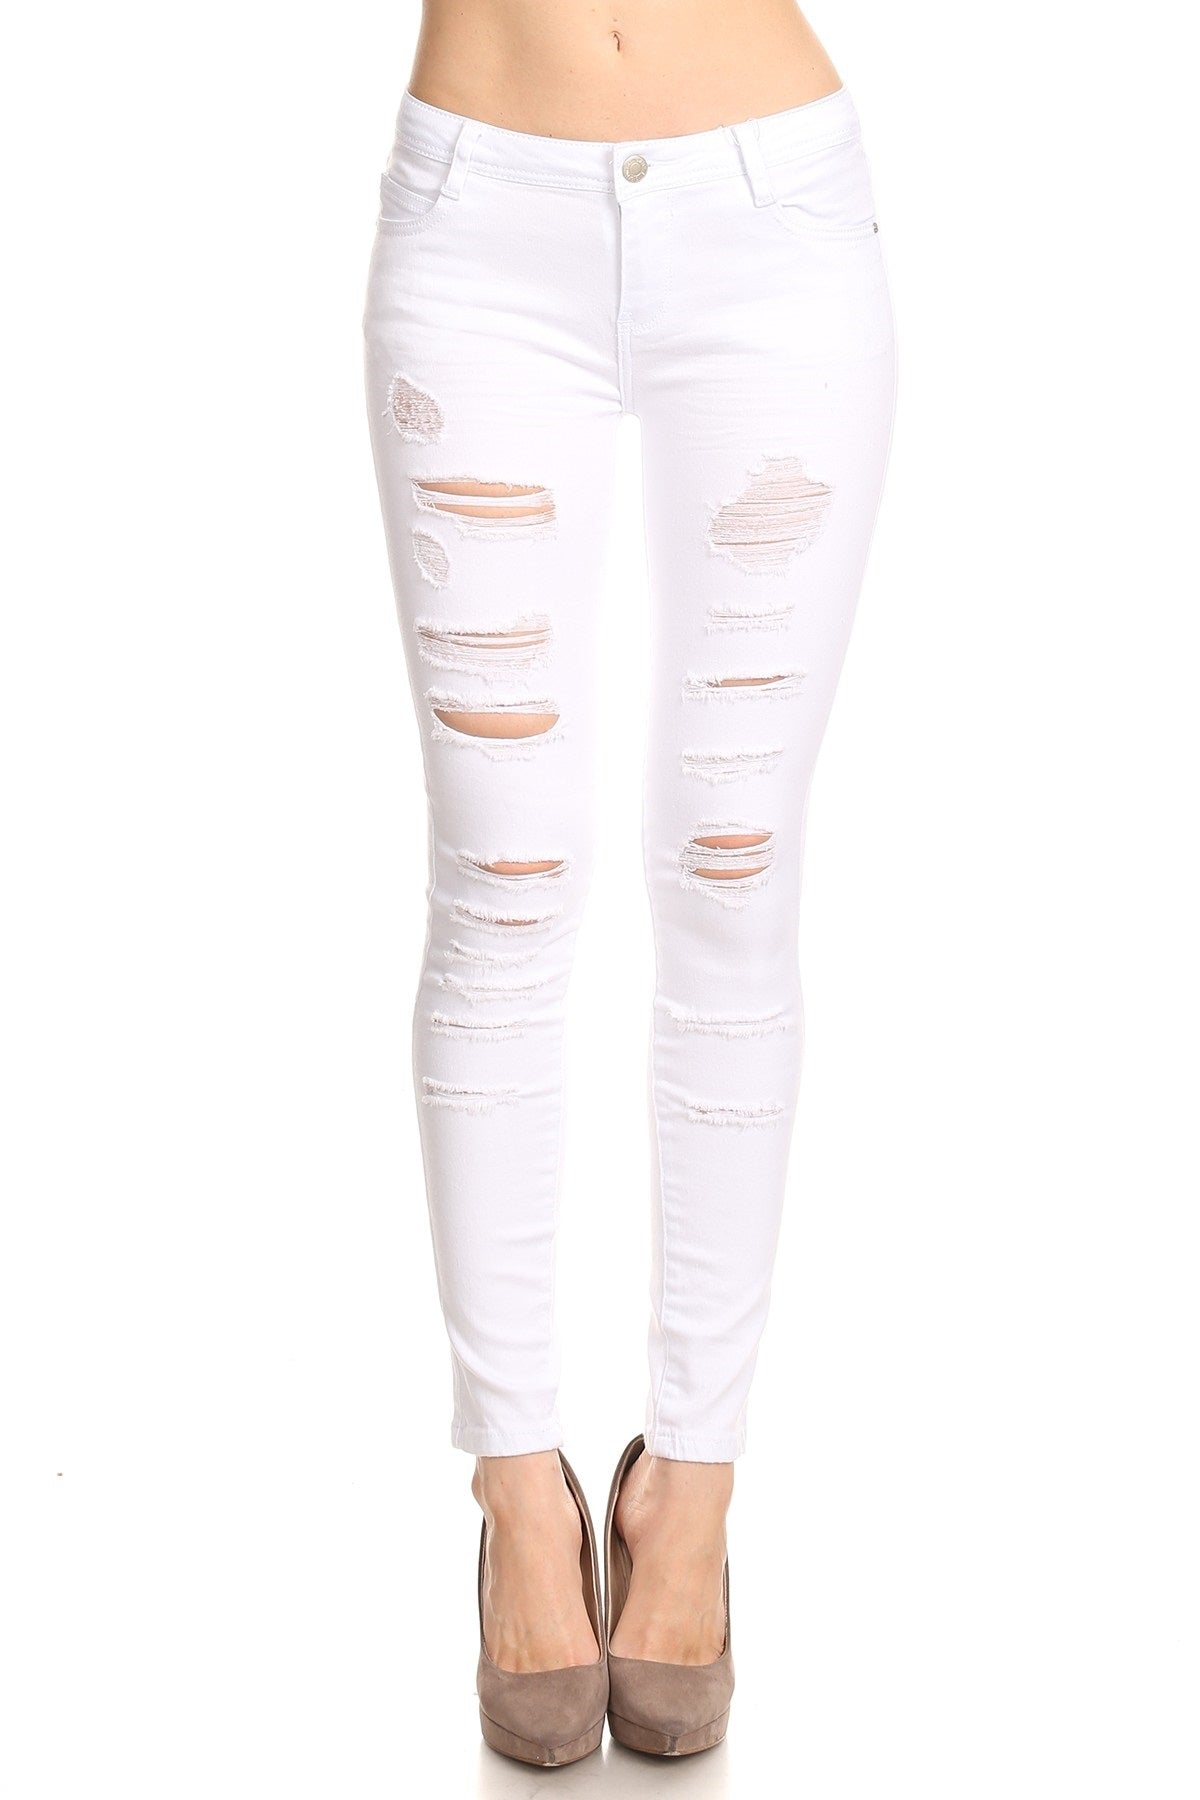 Buy Ripped Slim Fit Jeans online by Fit Miami Style for $34.99